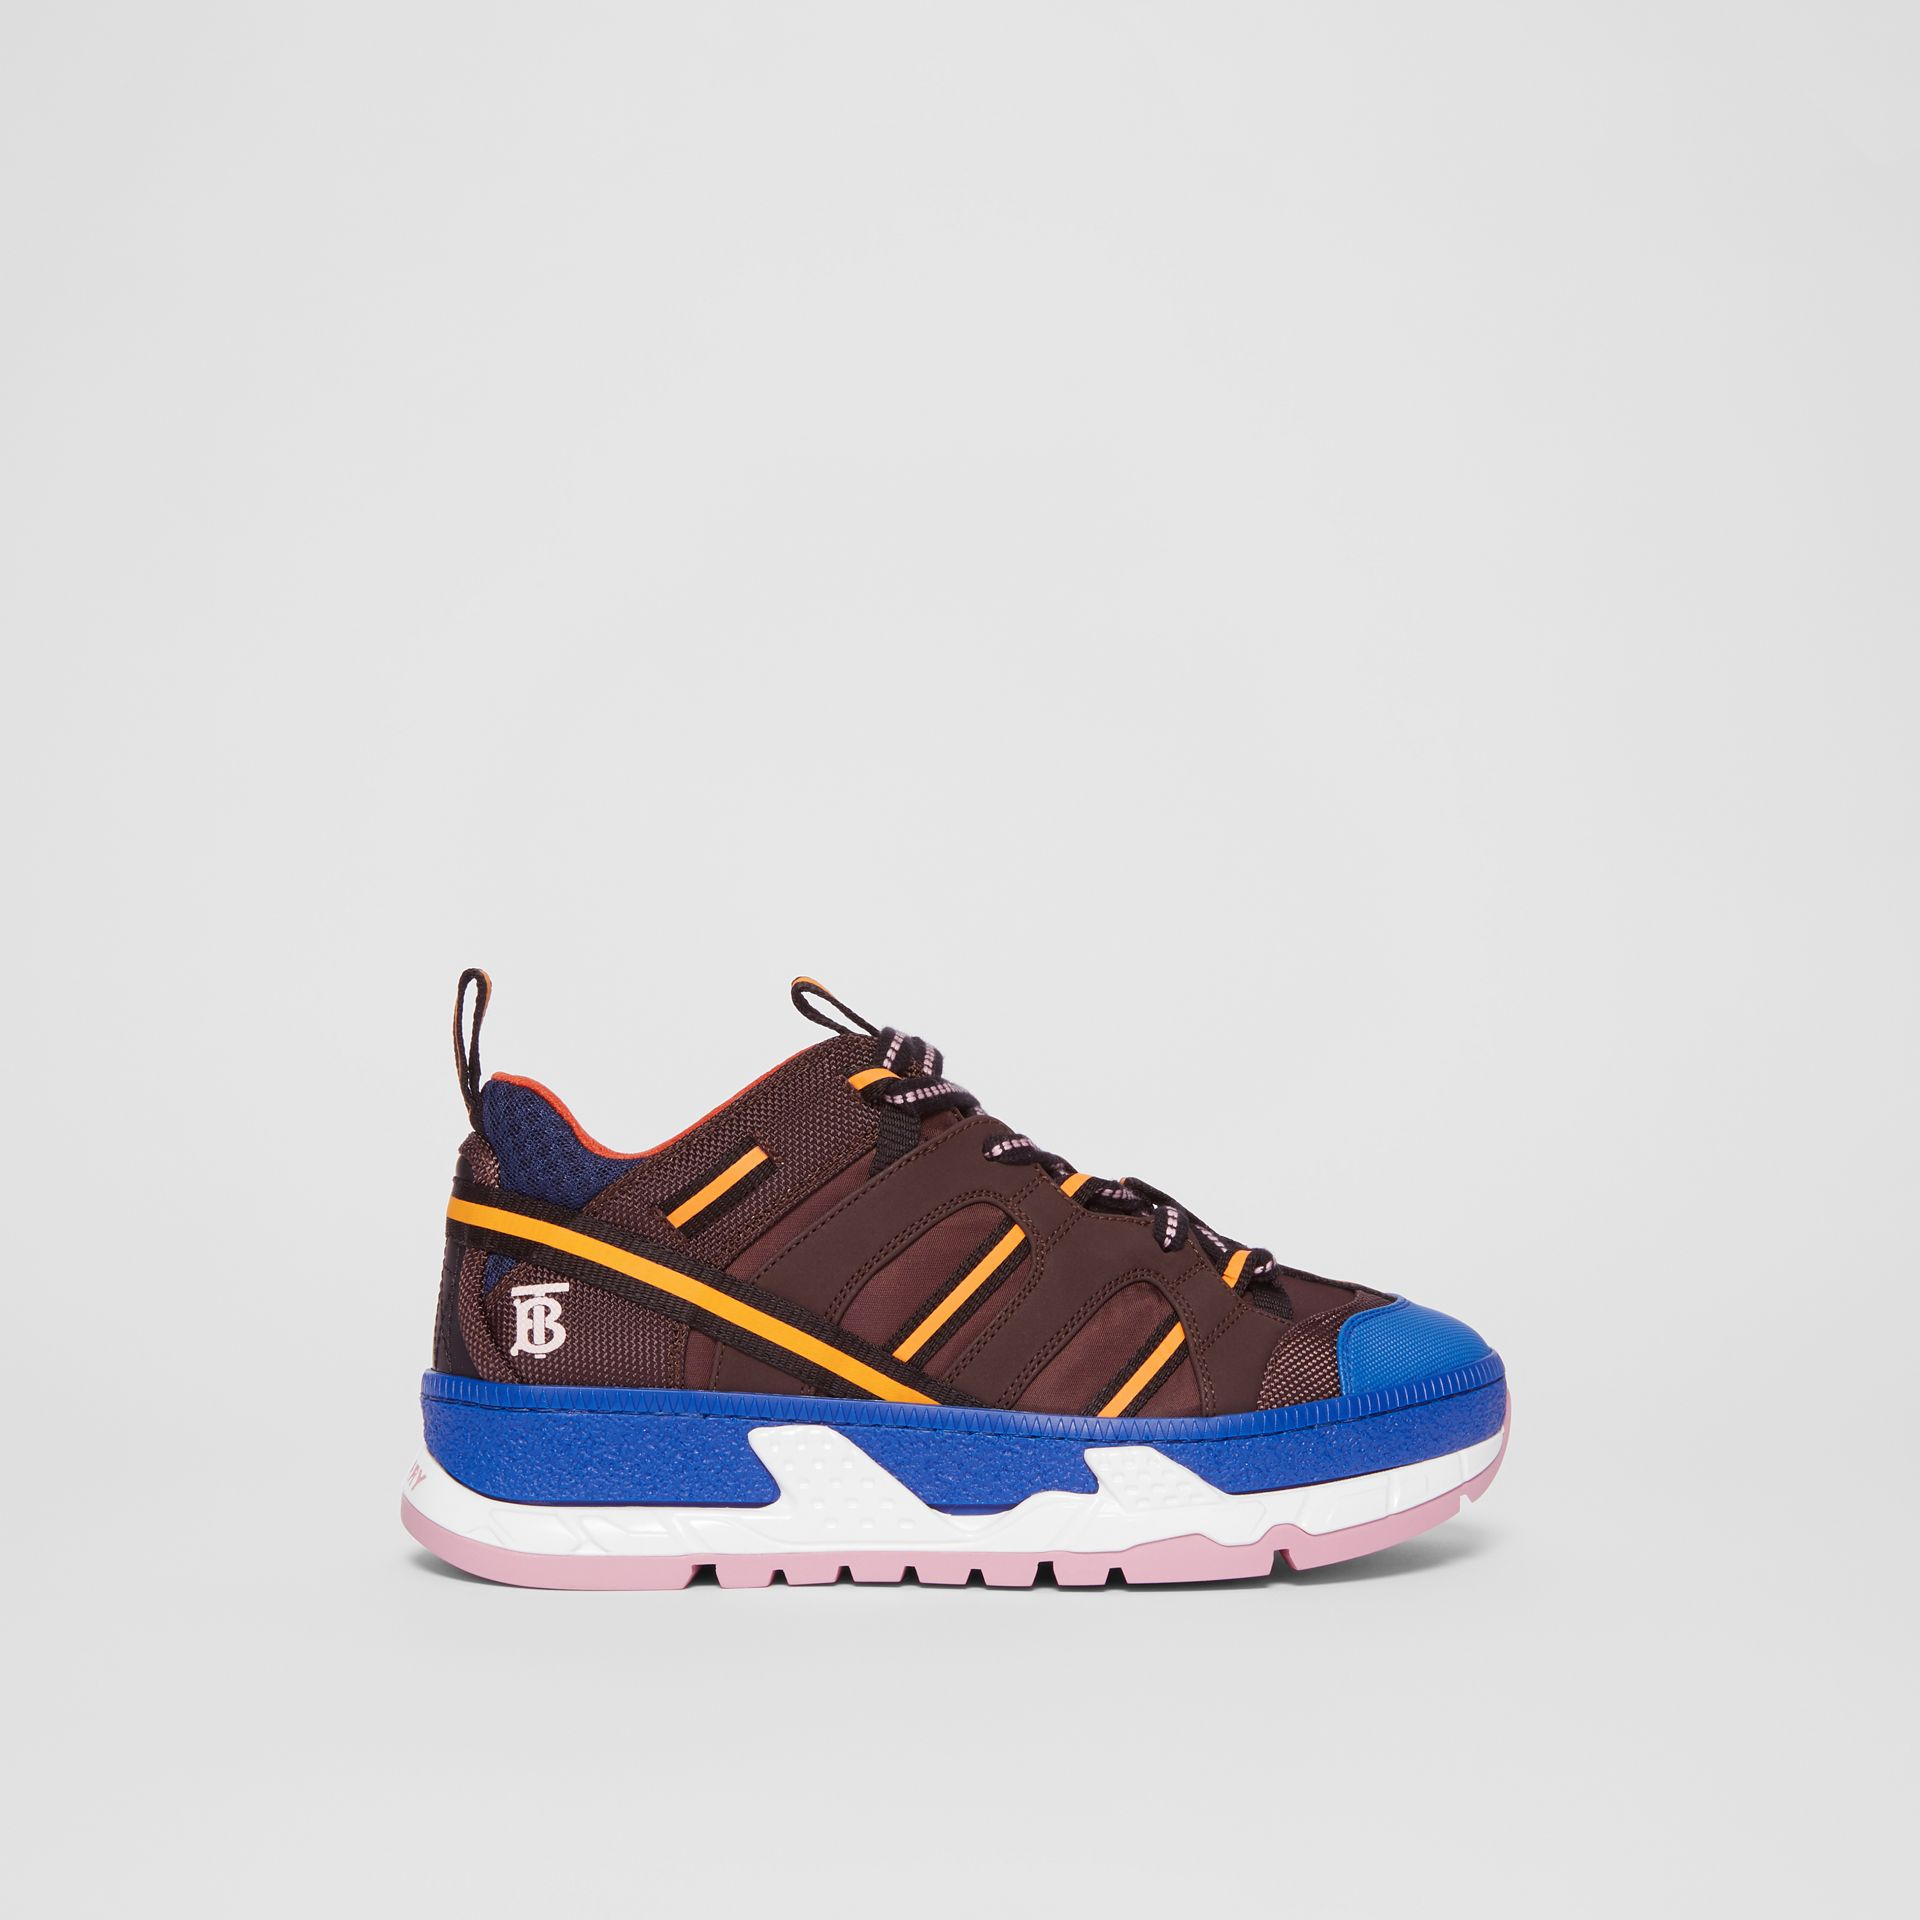 Nylon and Mesh Union Sneakers in Coffee/blue - Women | Burberry - gallery image 4